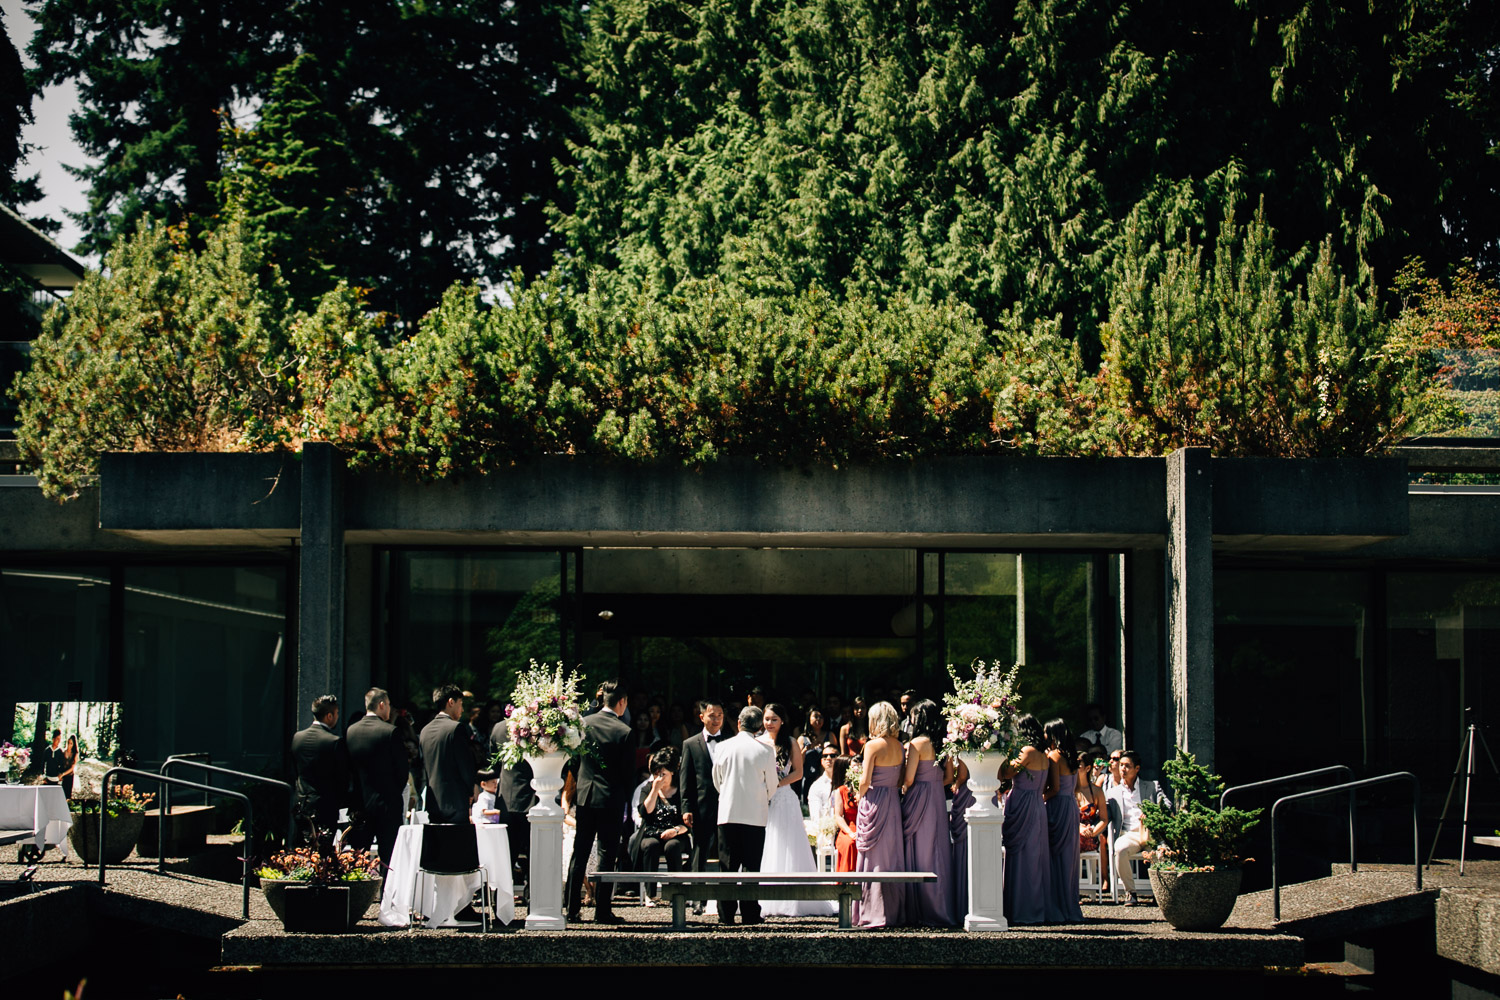 ubc wedding photography at sage bistro during summer